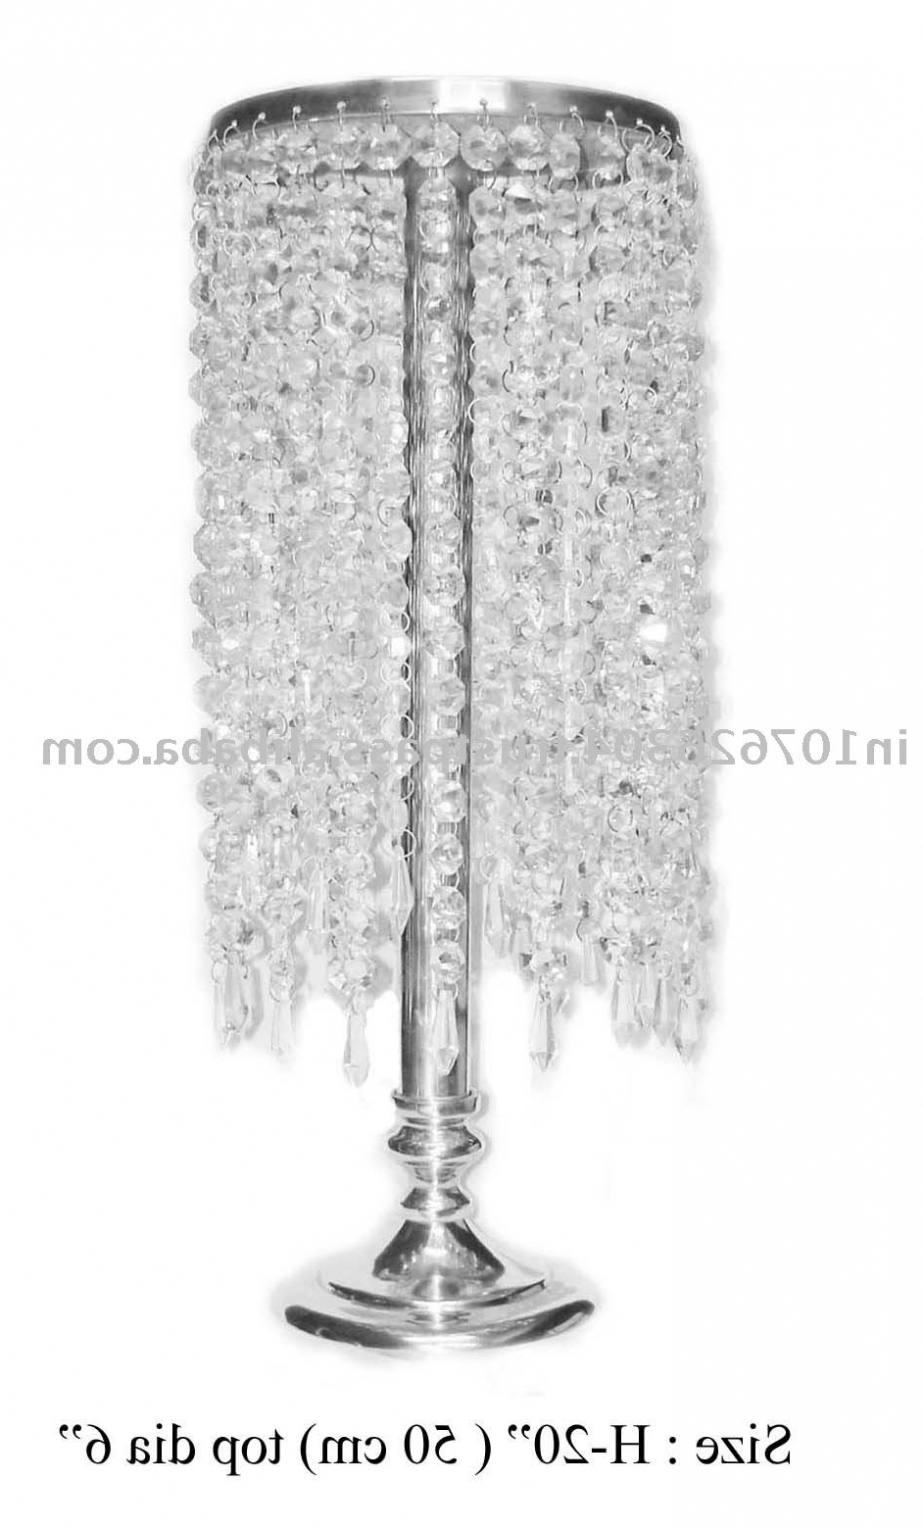 Table Chandeliers Regarding Latest Chandelier ~ 15 Photos Crystal Table Chandeliers (View 10 of 15)